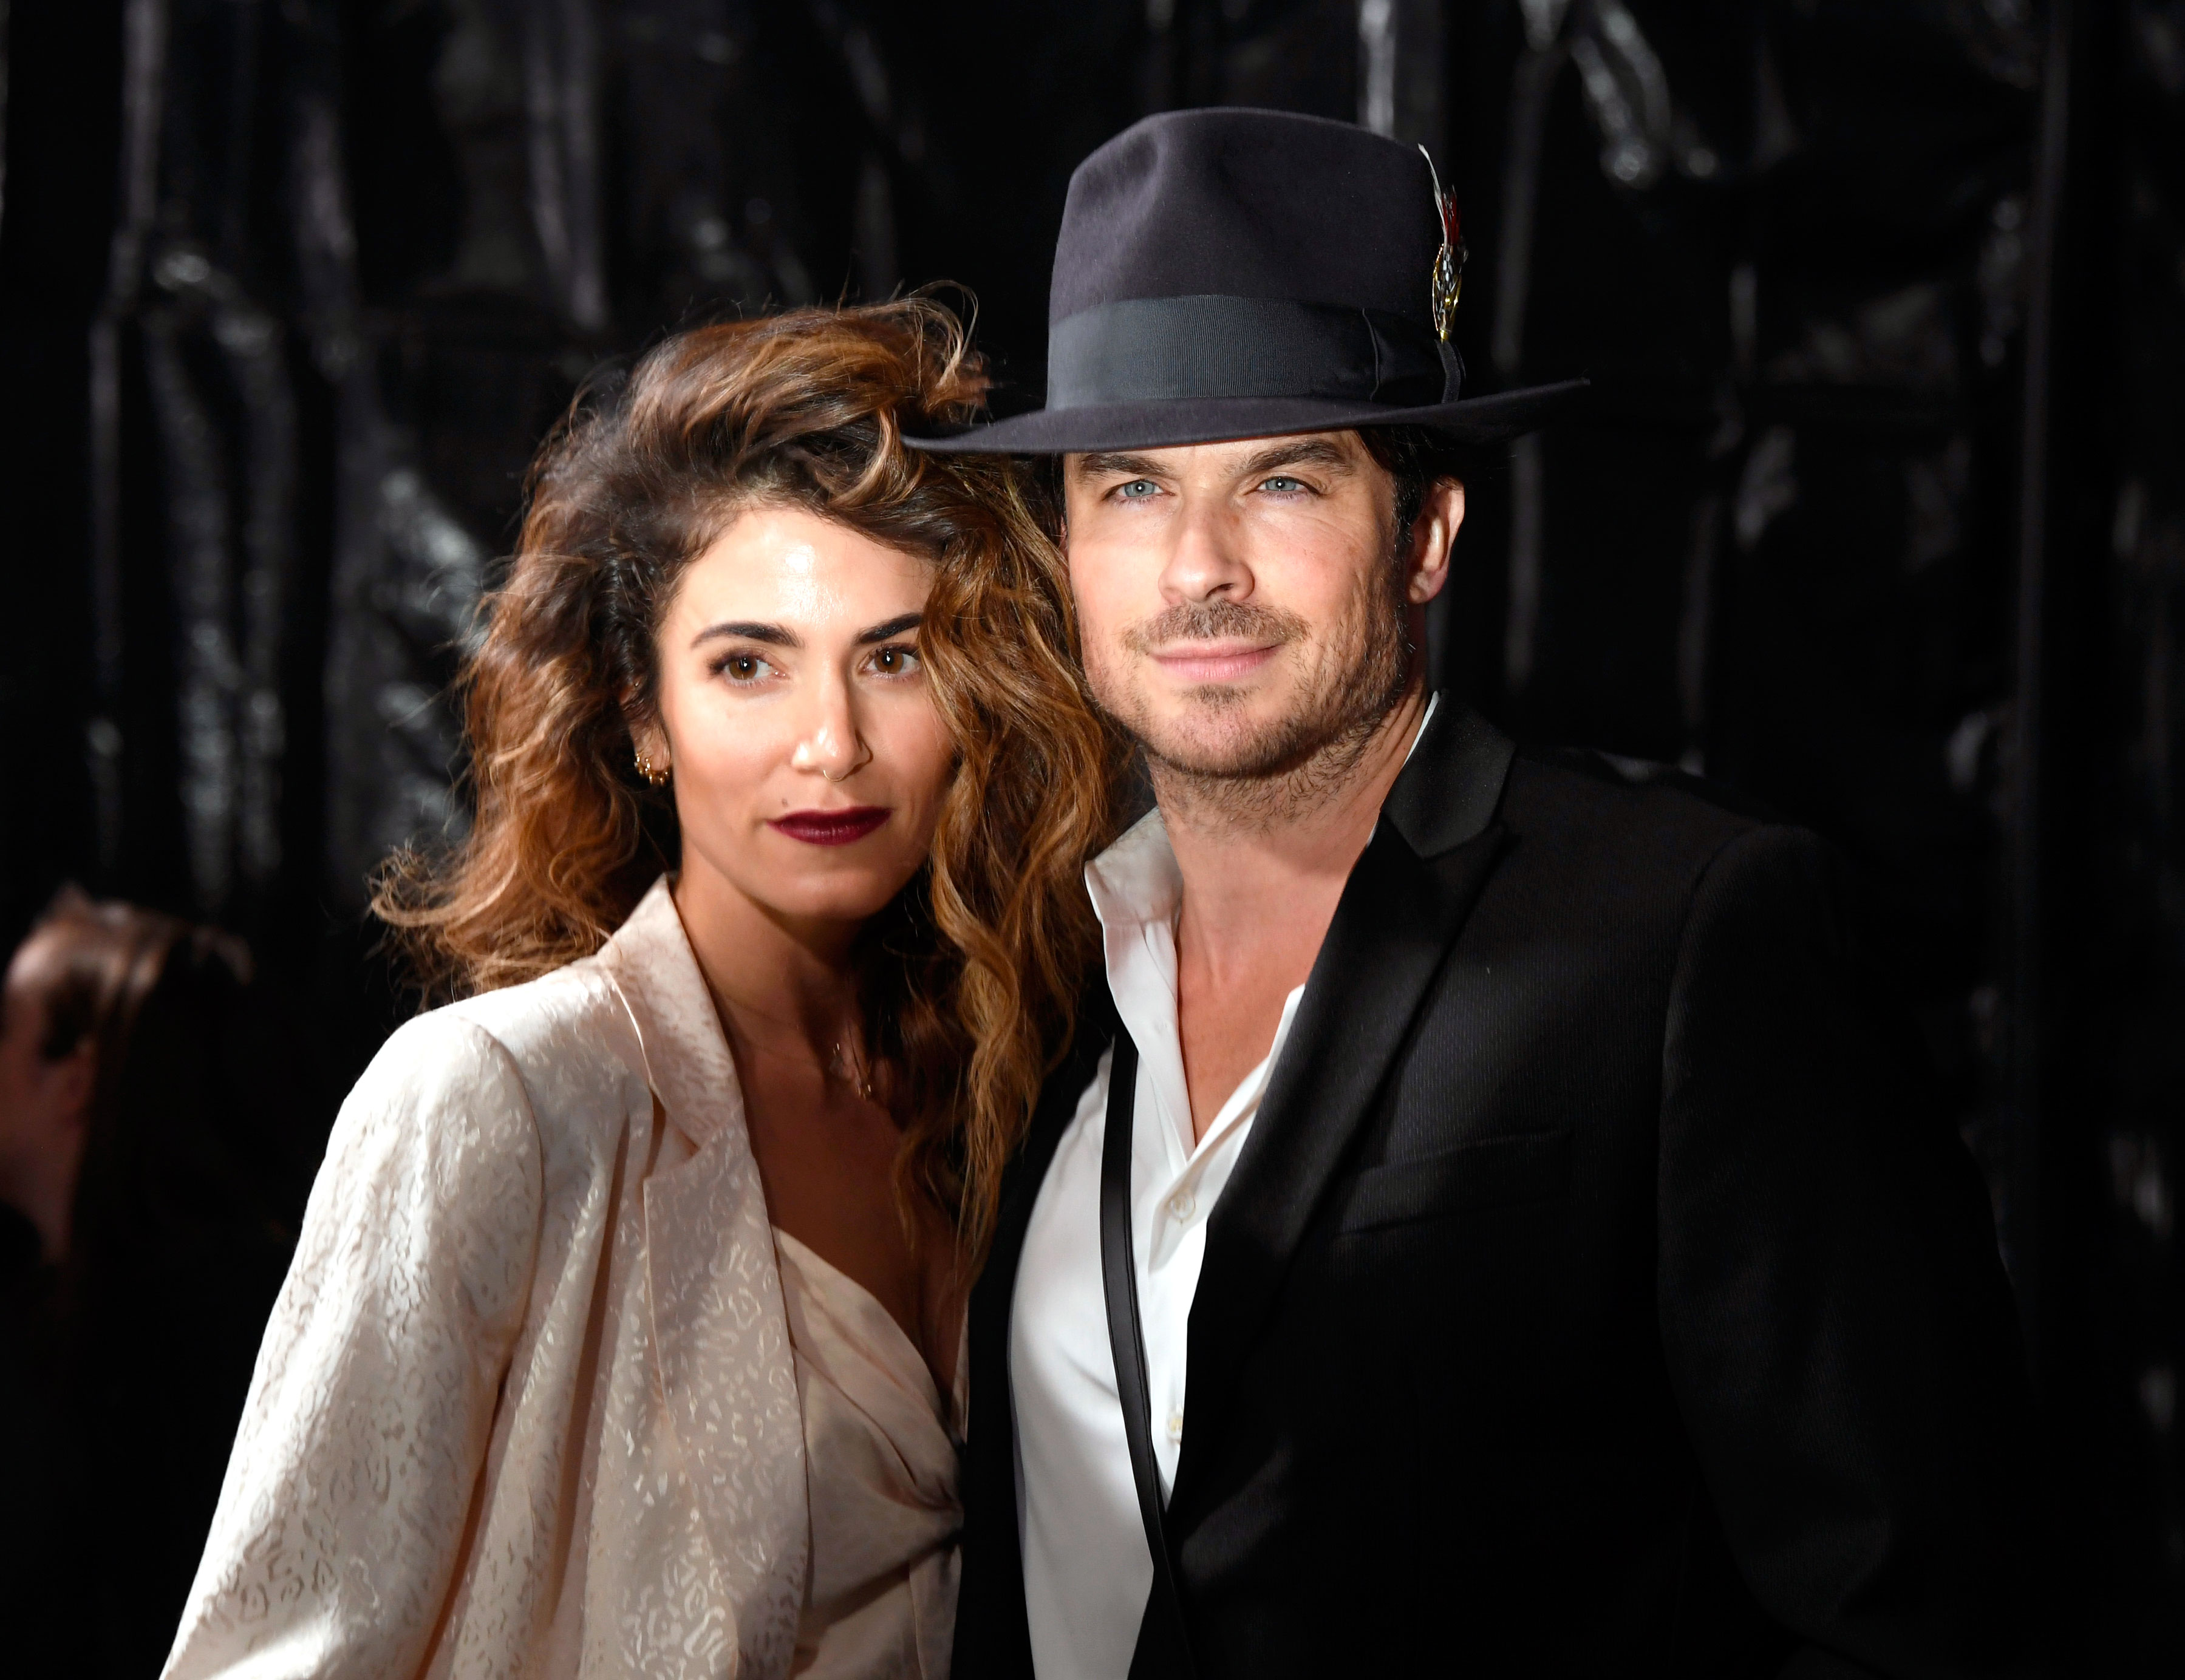 Ian Somerhalder and Nikki Reed Inside 2019's Biggest Pre-Oscars Parties - Nikki Reed and Ian Somerhalder attend the Cadillac celebrates The 91st Annual Academy Awards at Chateau Marmont on February 21, 2019 in Los Angeles, California.